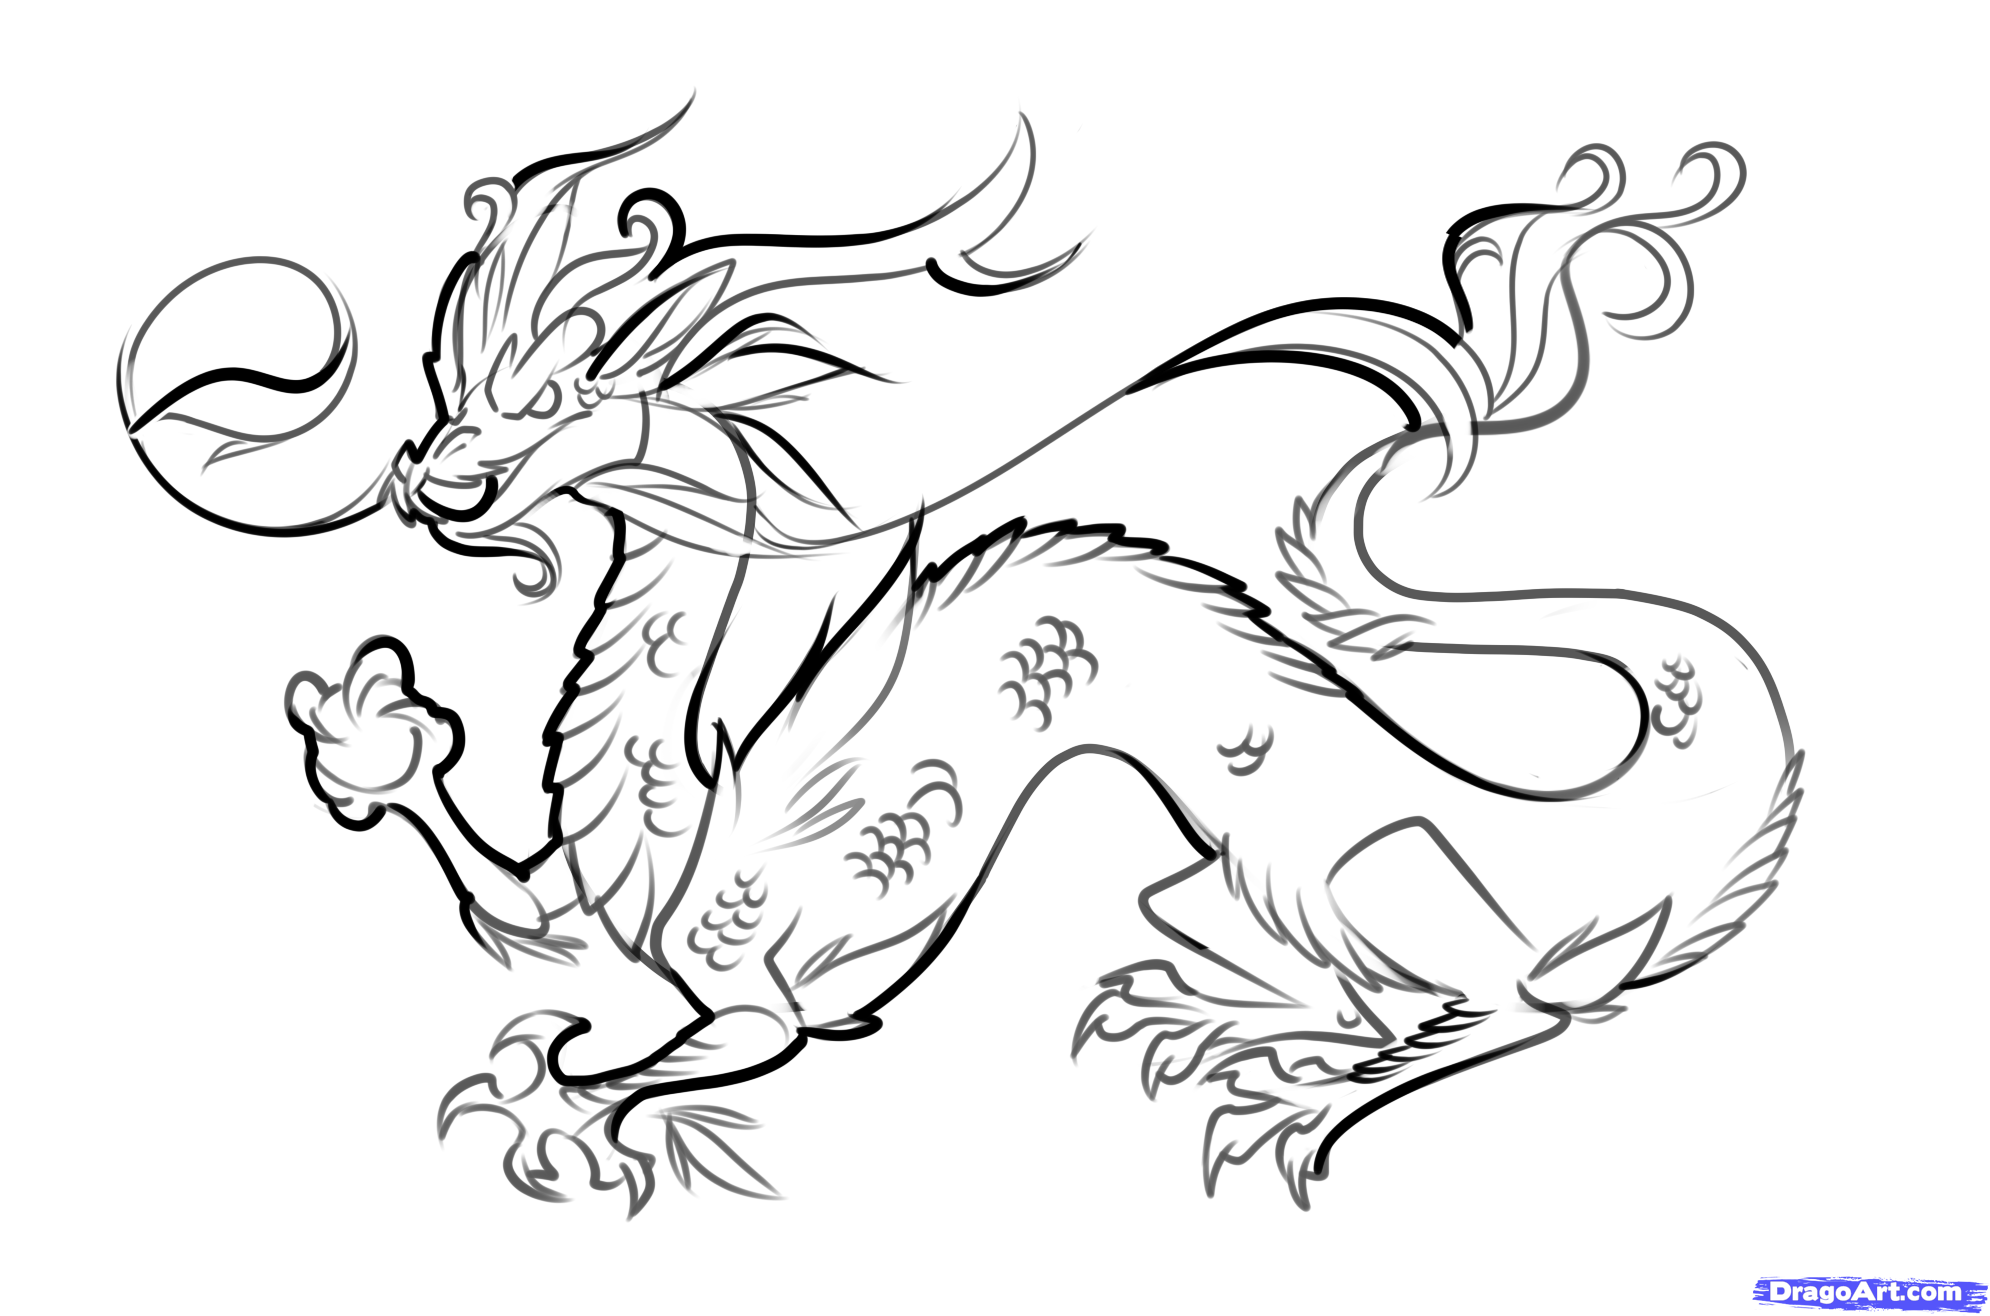 How to draw easy dragons step by step to draw a chinese dragon easy step by step dragons draw a dragon